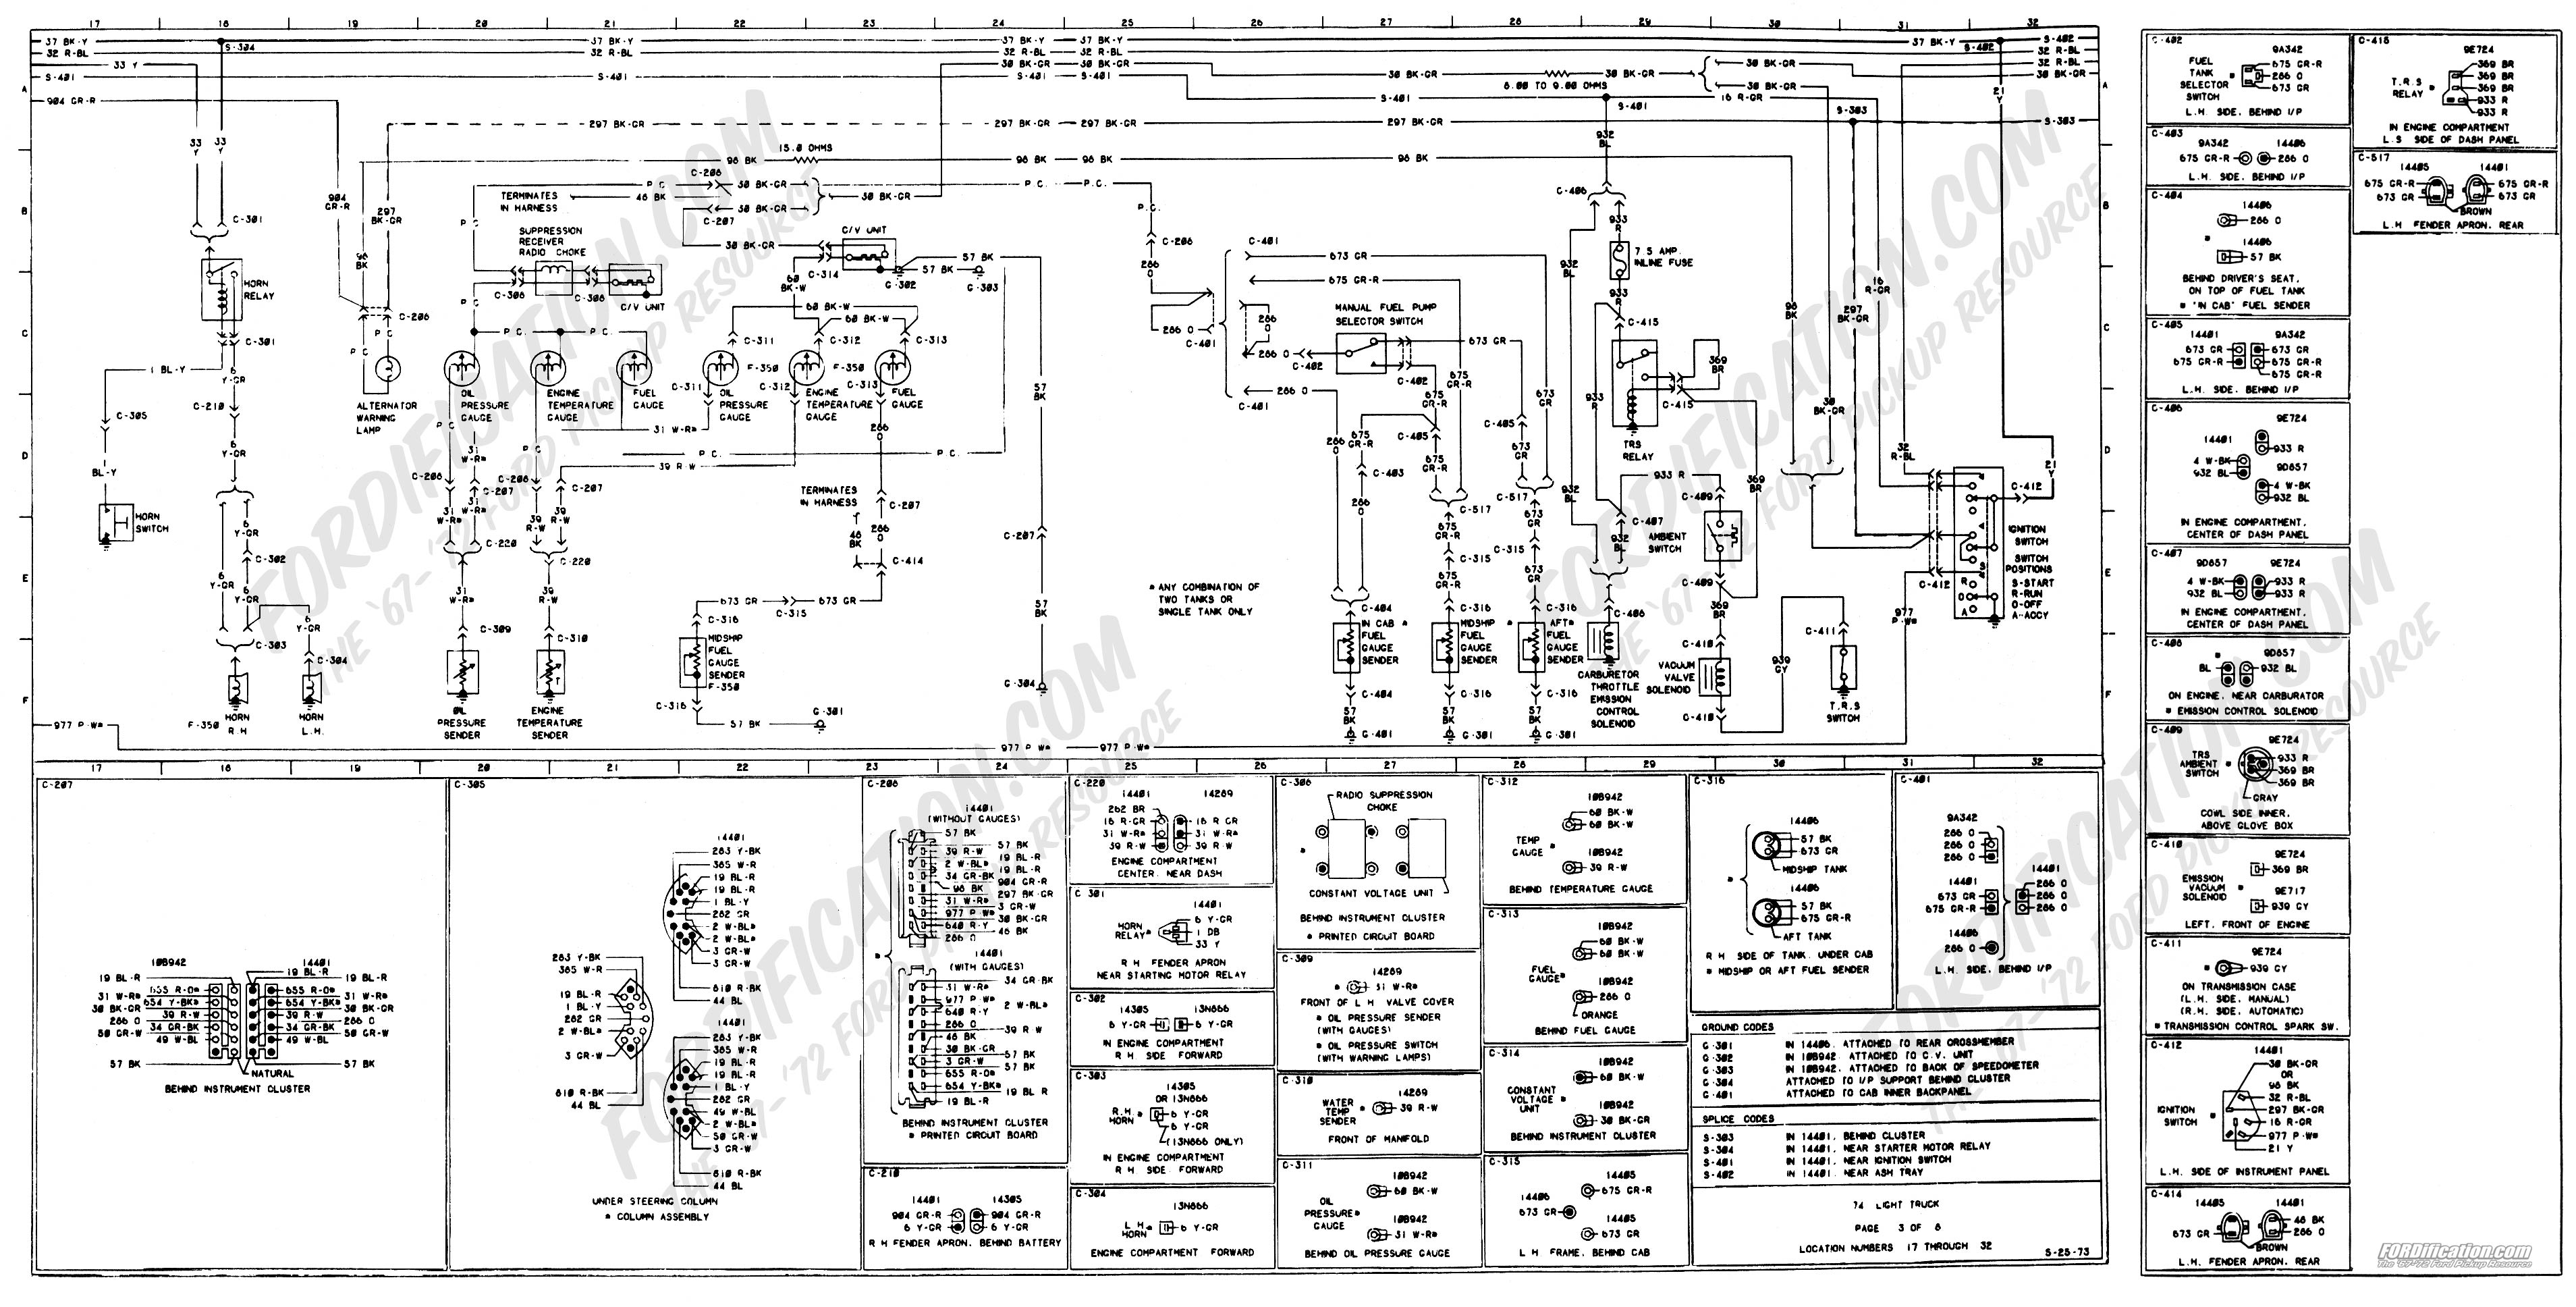 wiring_74master_3of8 1973 1979 ford truck wiring diagrams & schematics fordification net ford wiring diagrams at bayanpartner.co